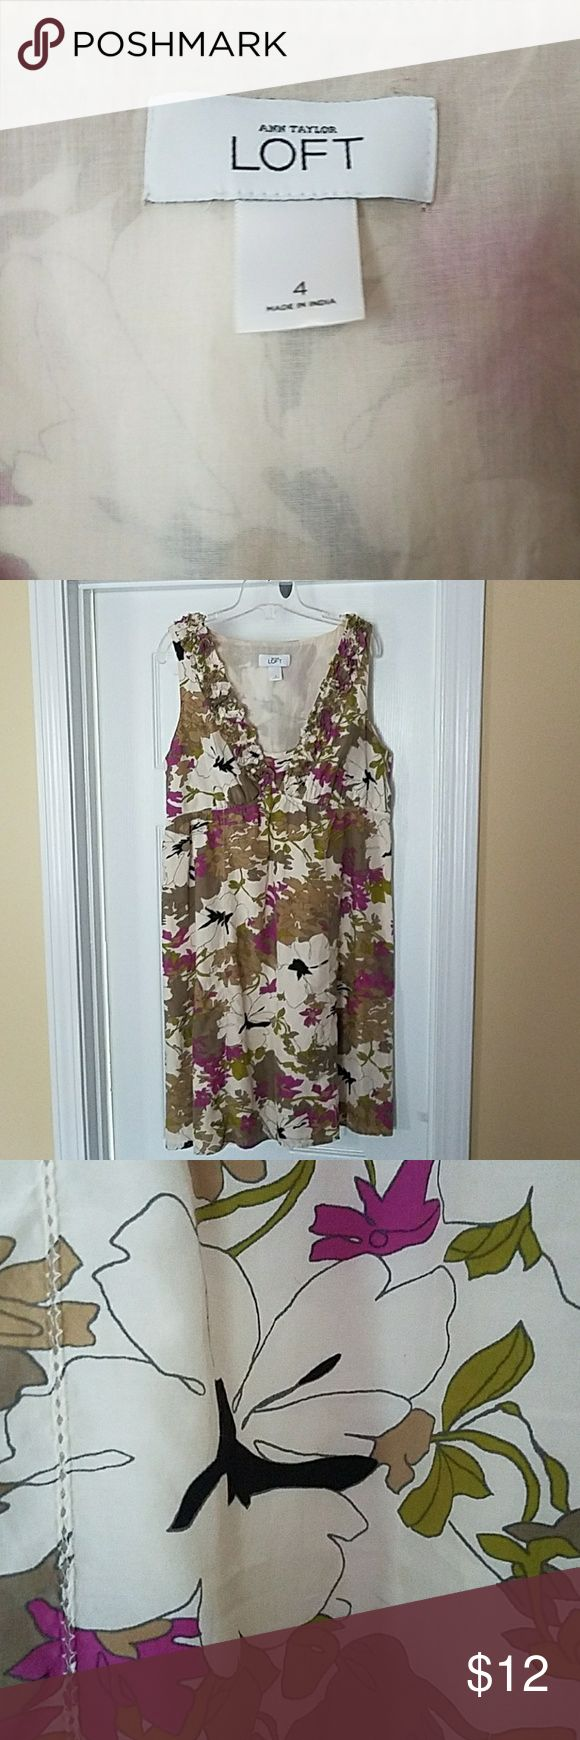 Anne Taylor Loft Silk Blend Sundress Silk floral print sundress with ruffled v-neck and elastic waist. About 32 inches from shoulder to hem. LOFT Dresses